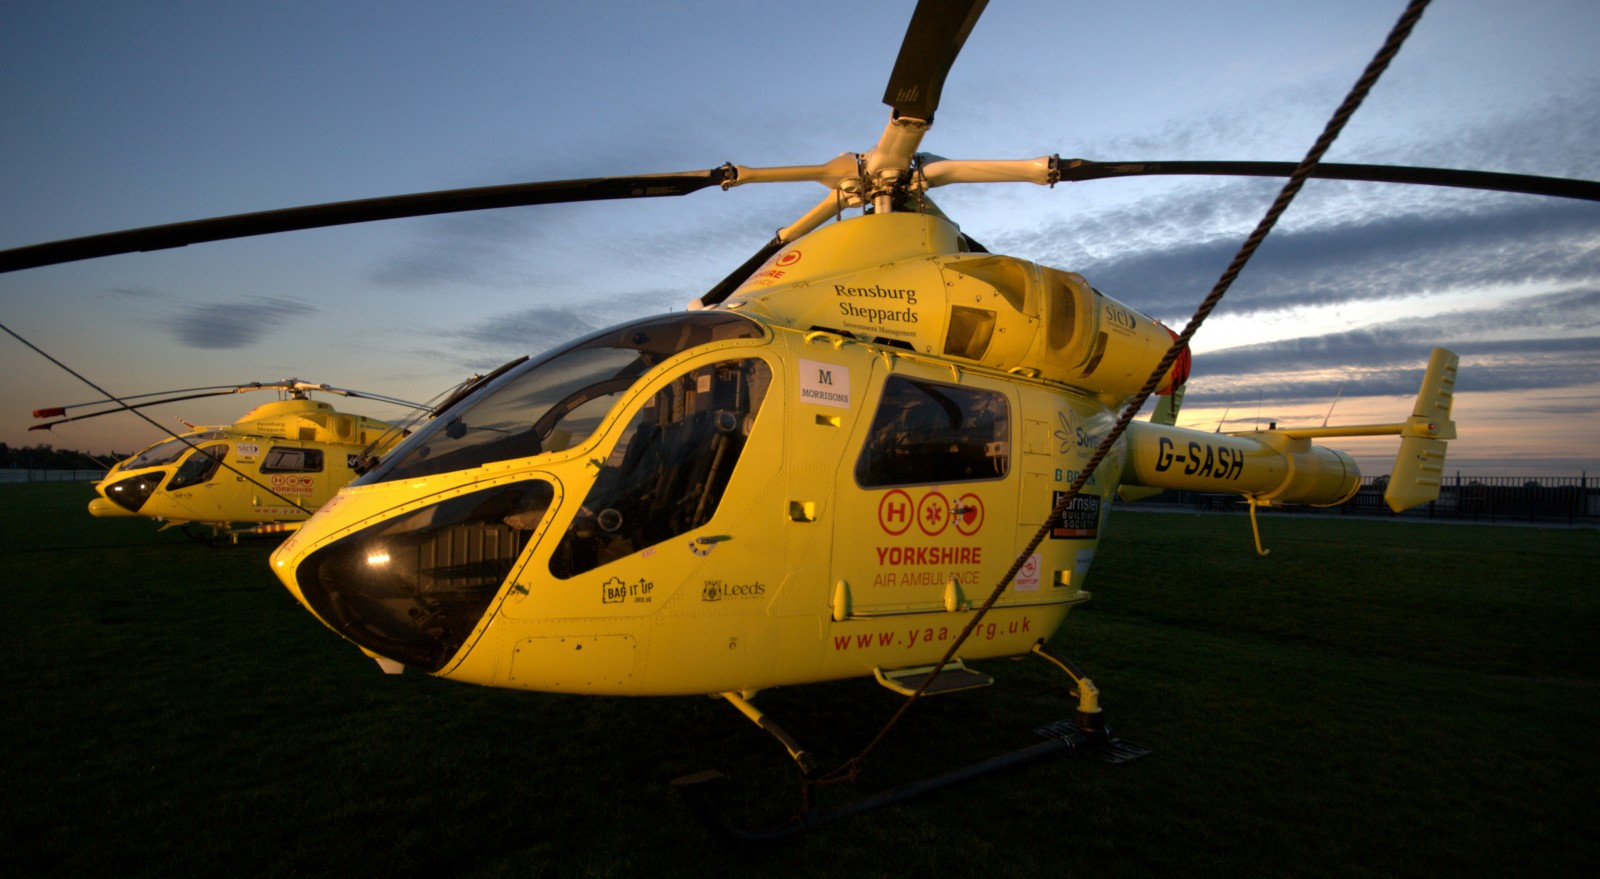 yorkshire air ambulance helicopter 3 event photography